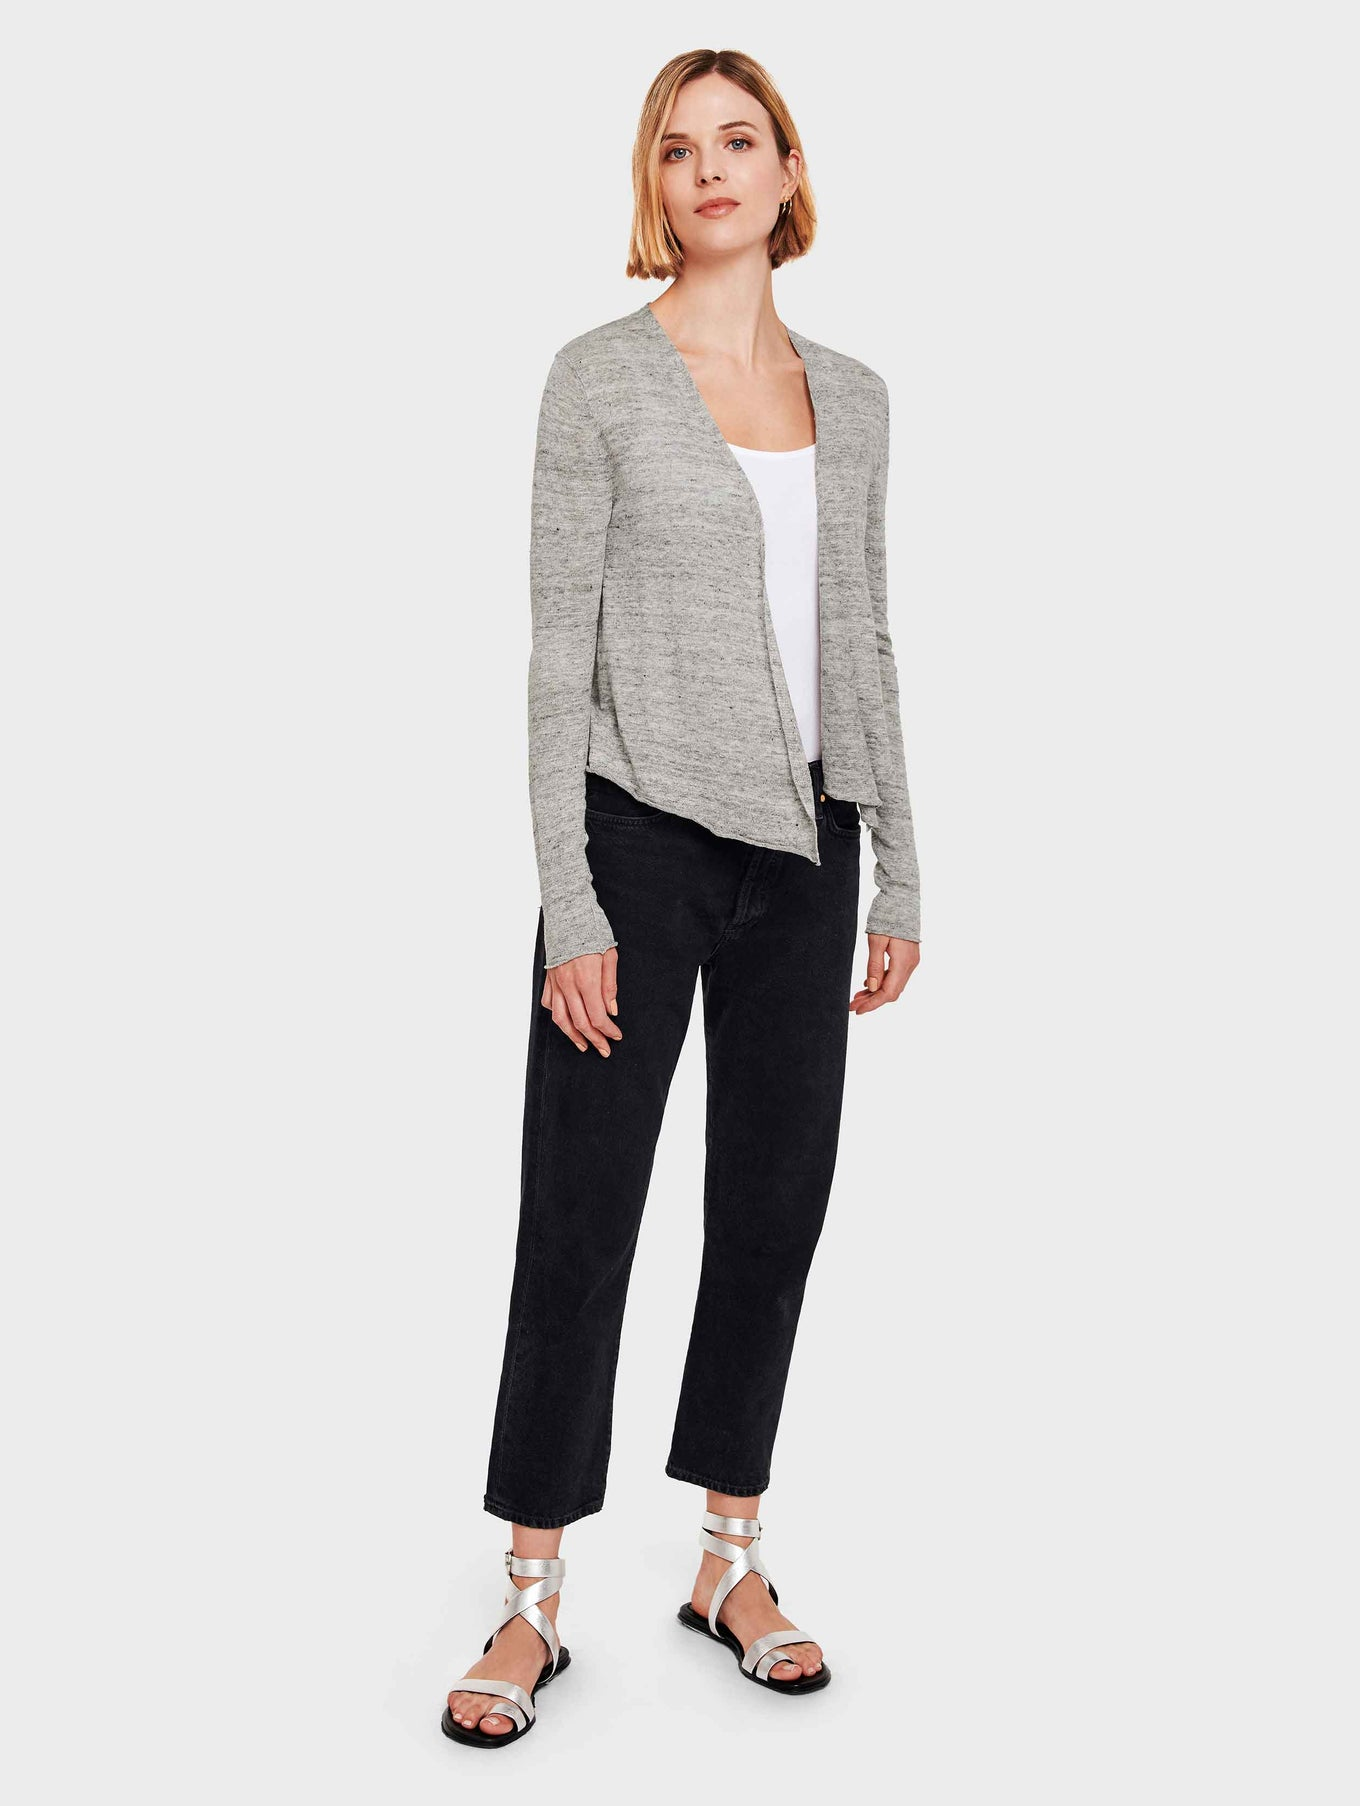 Linen Cropped Swing Cardigan - Shadow Heather - Image 4